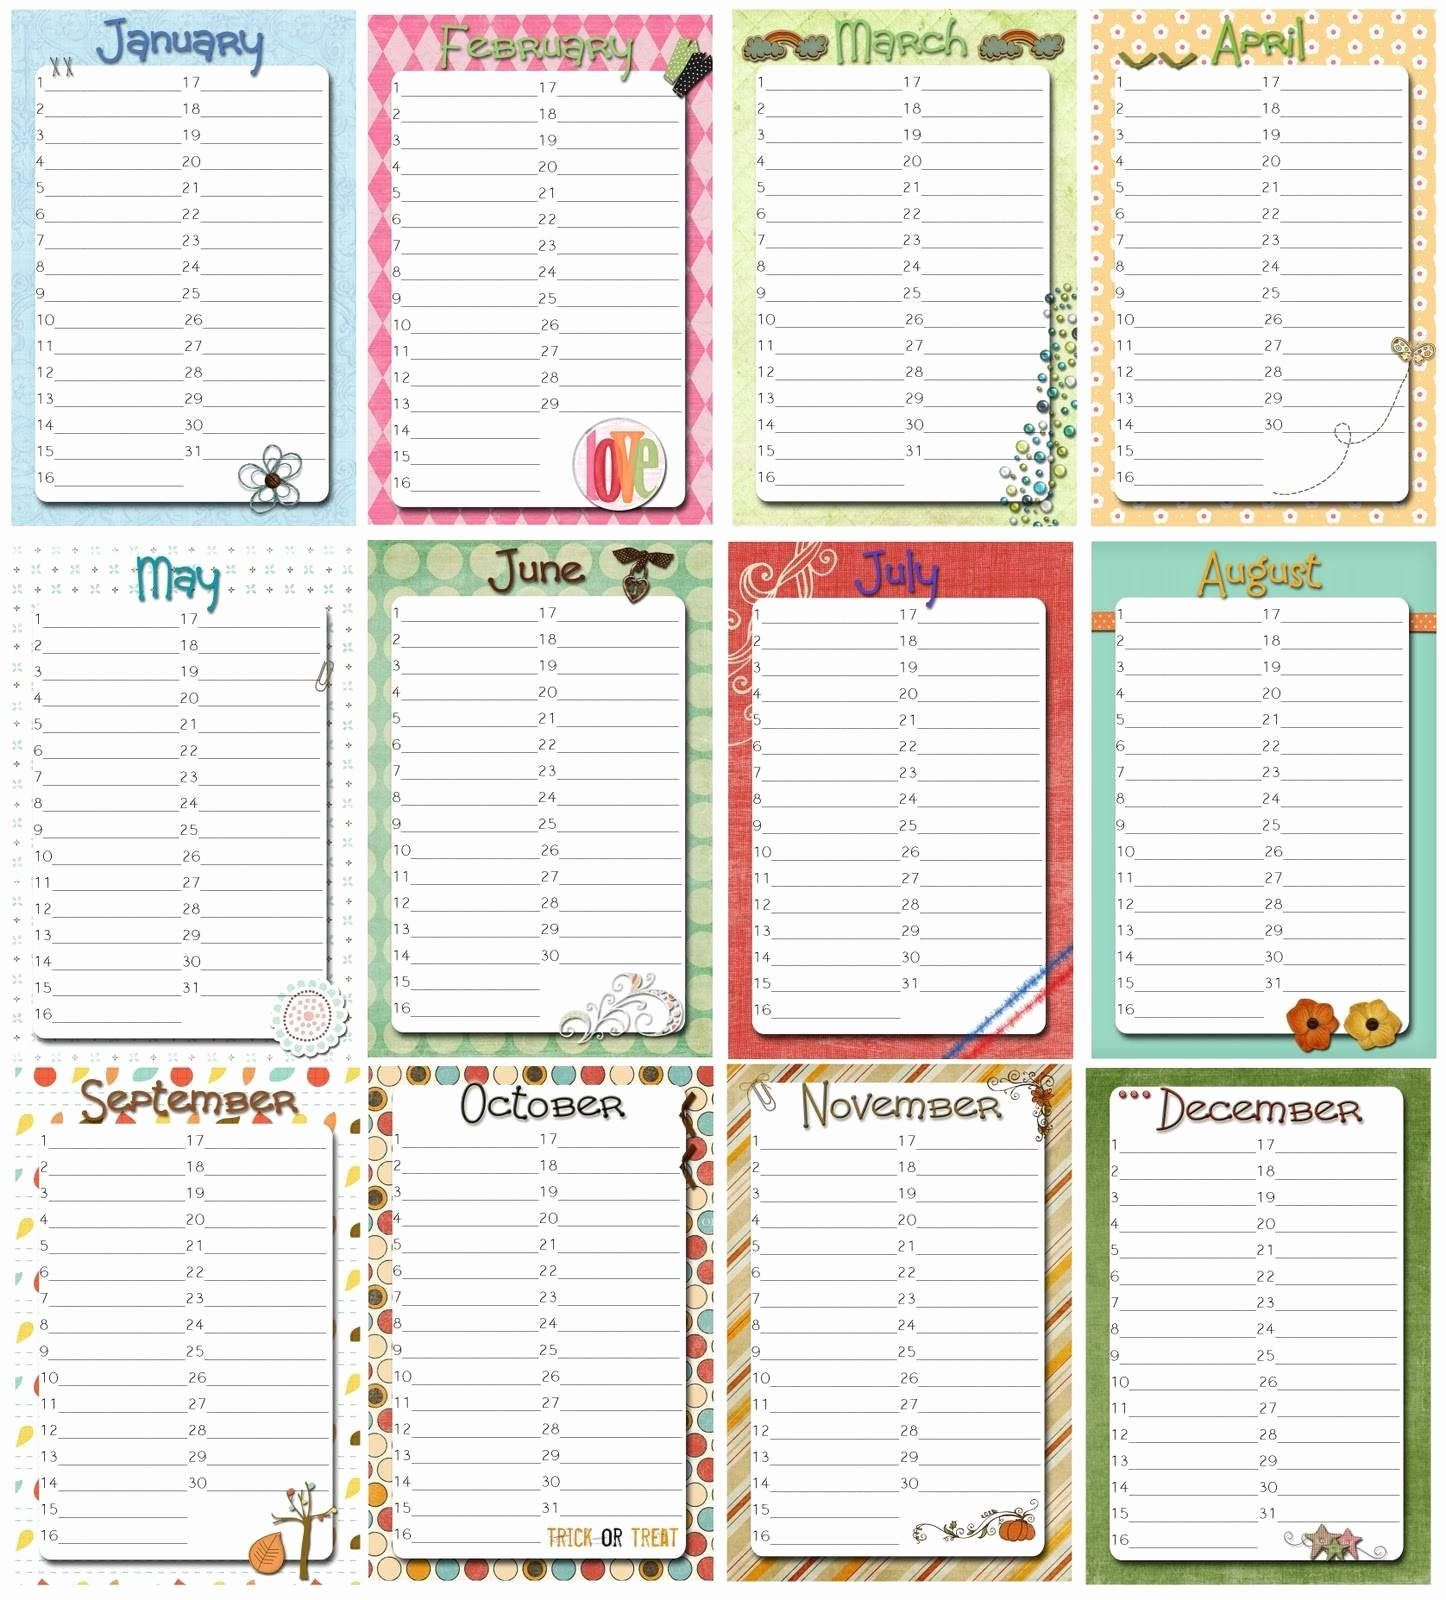 Birthday and Anniversary Calendar Template New Free Perpetual Calendar Template